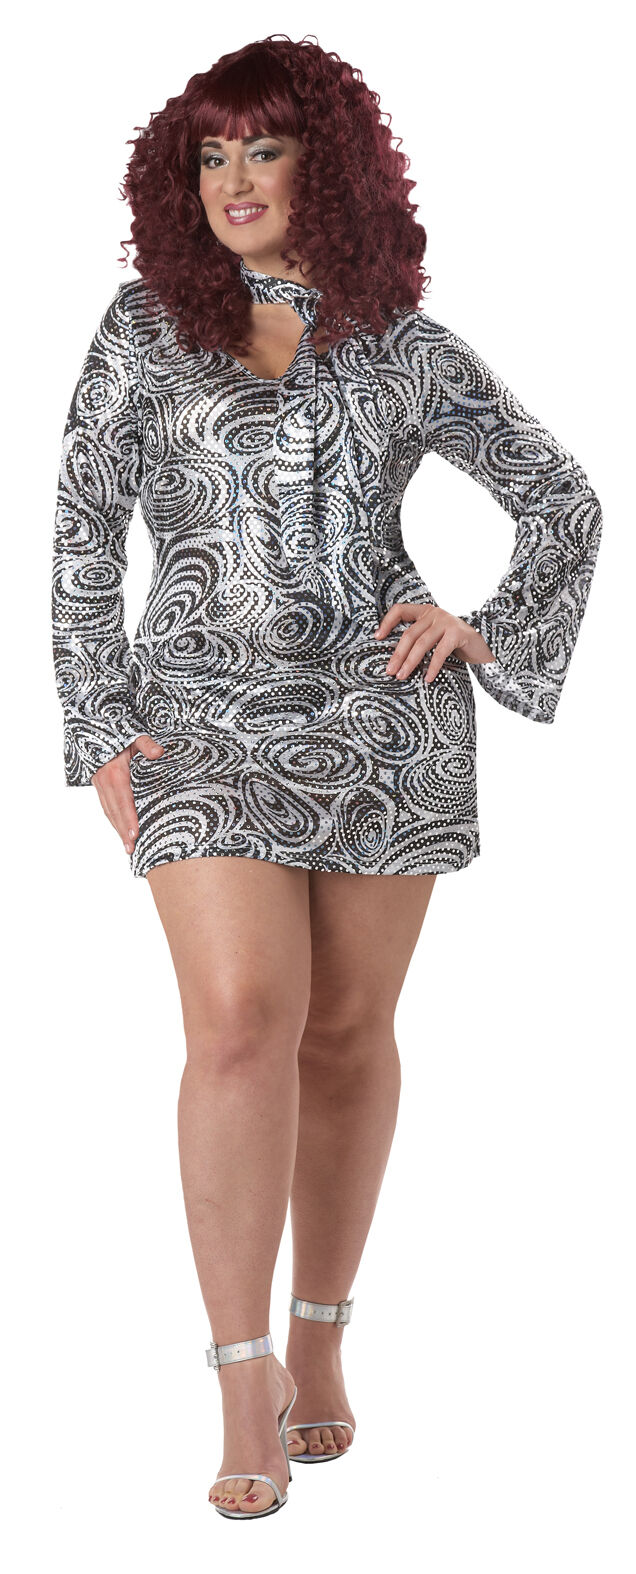 Details about Disco Diva Discolicious Women Plus Size Adult Halloween  Costume